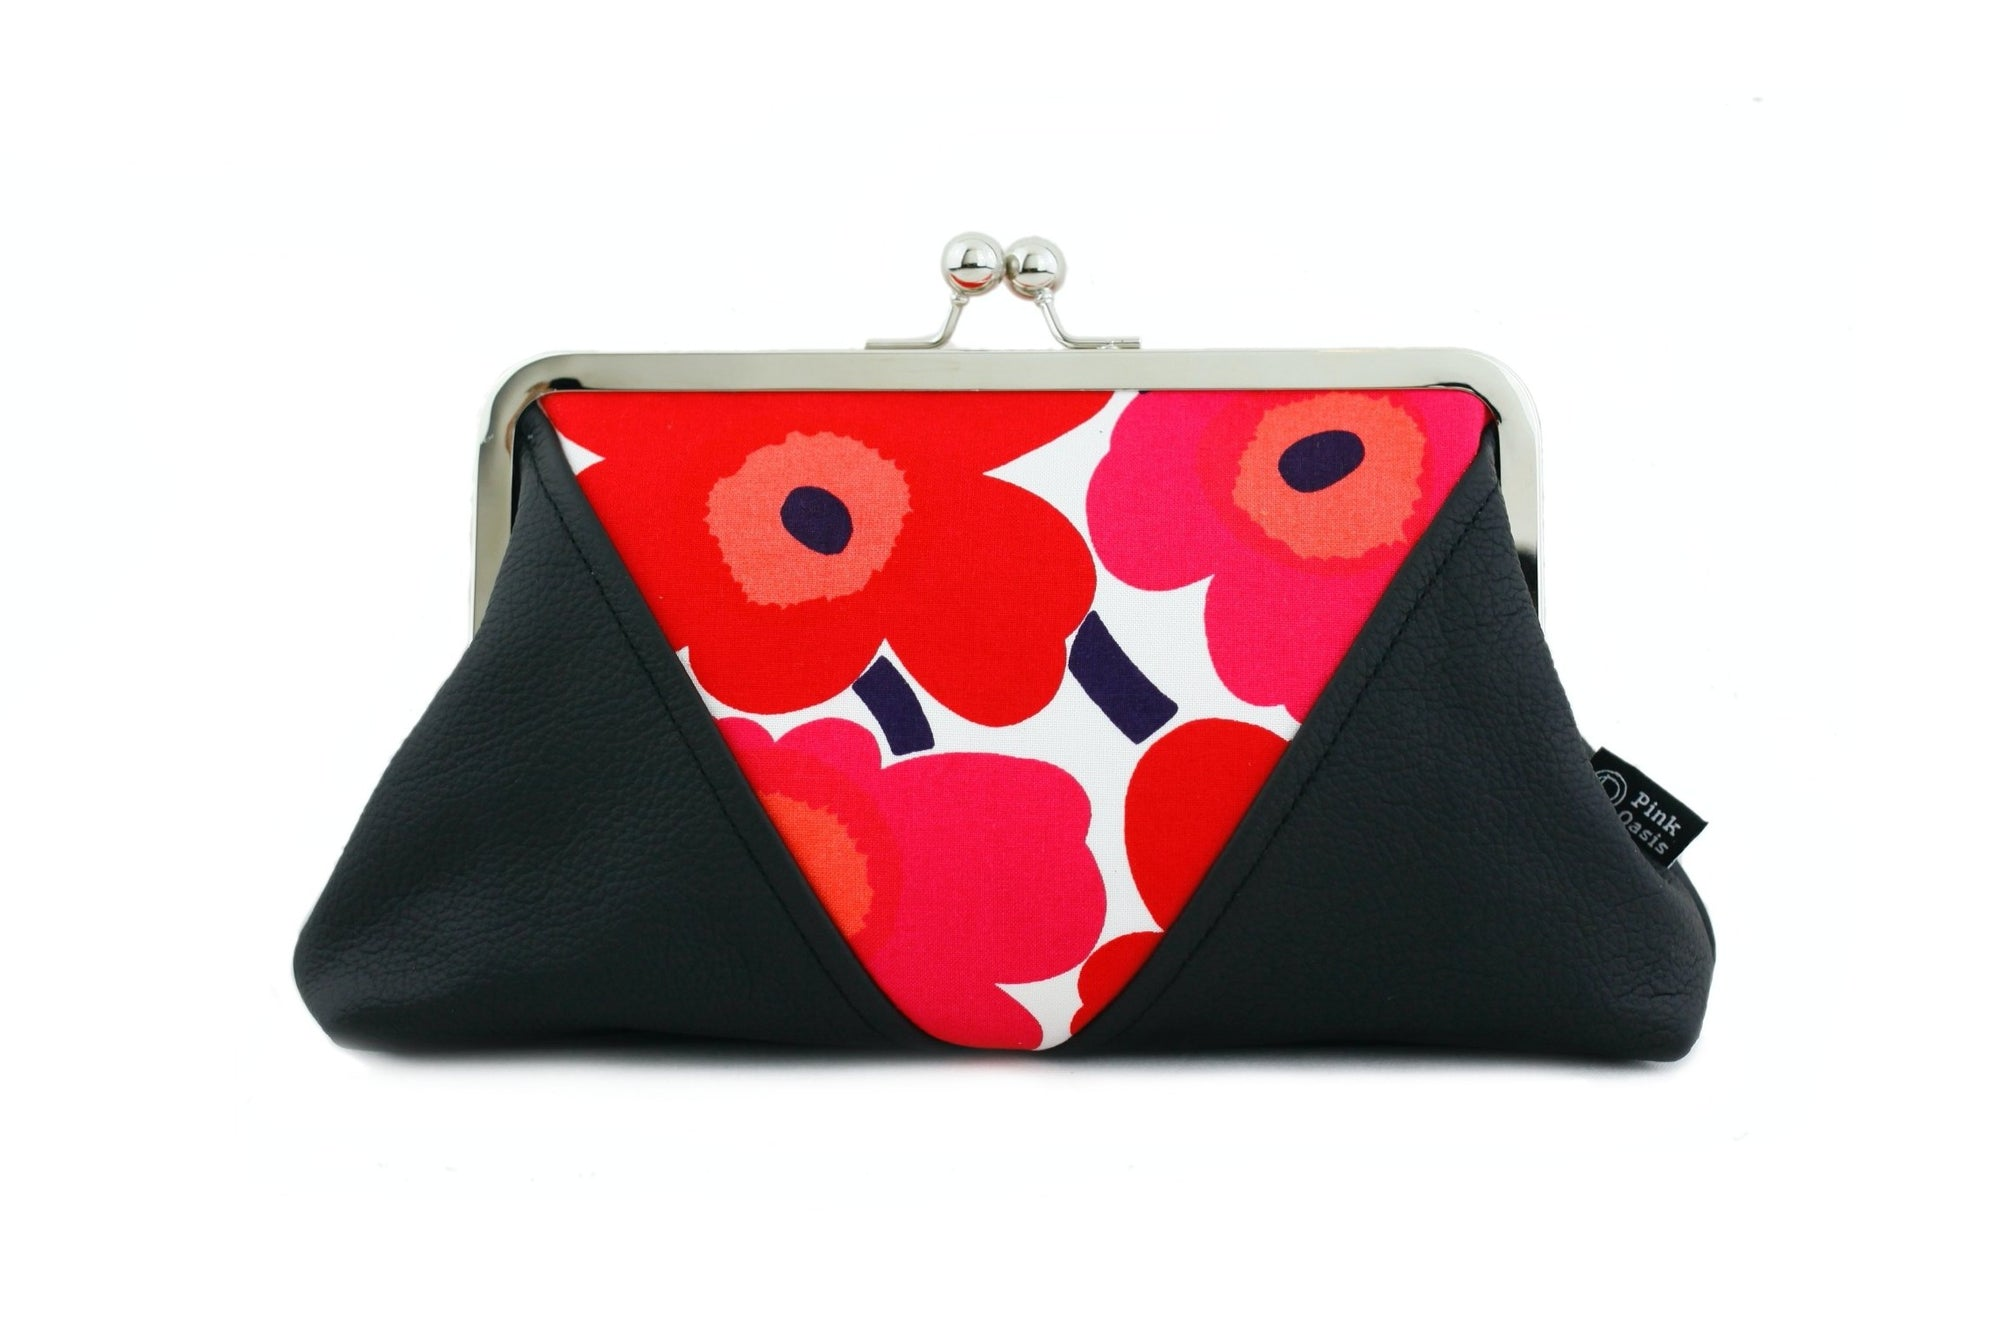 Unikko Poppy Red Kisslock Clutch & Crossbody Bag | PINKOASIS